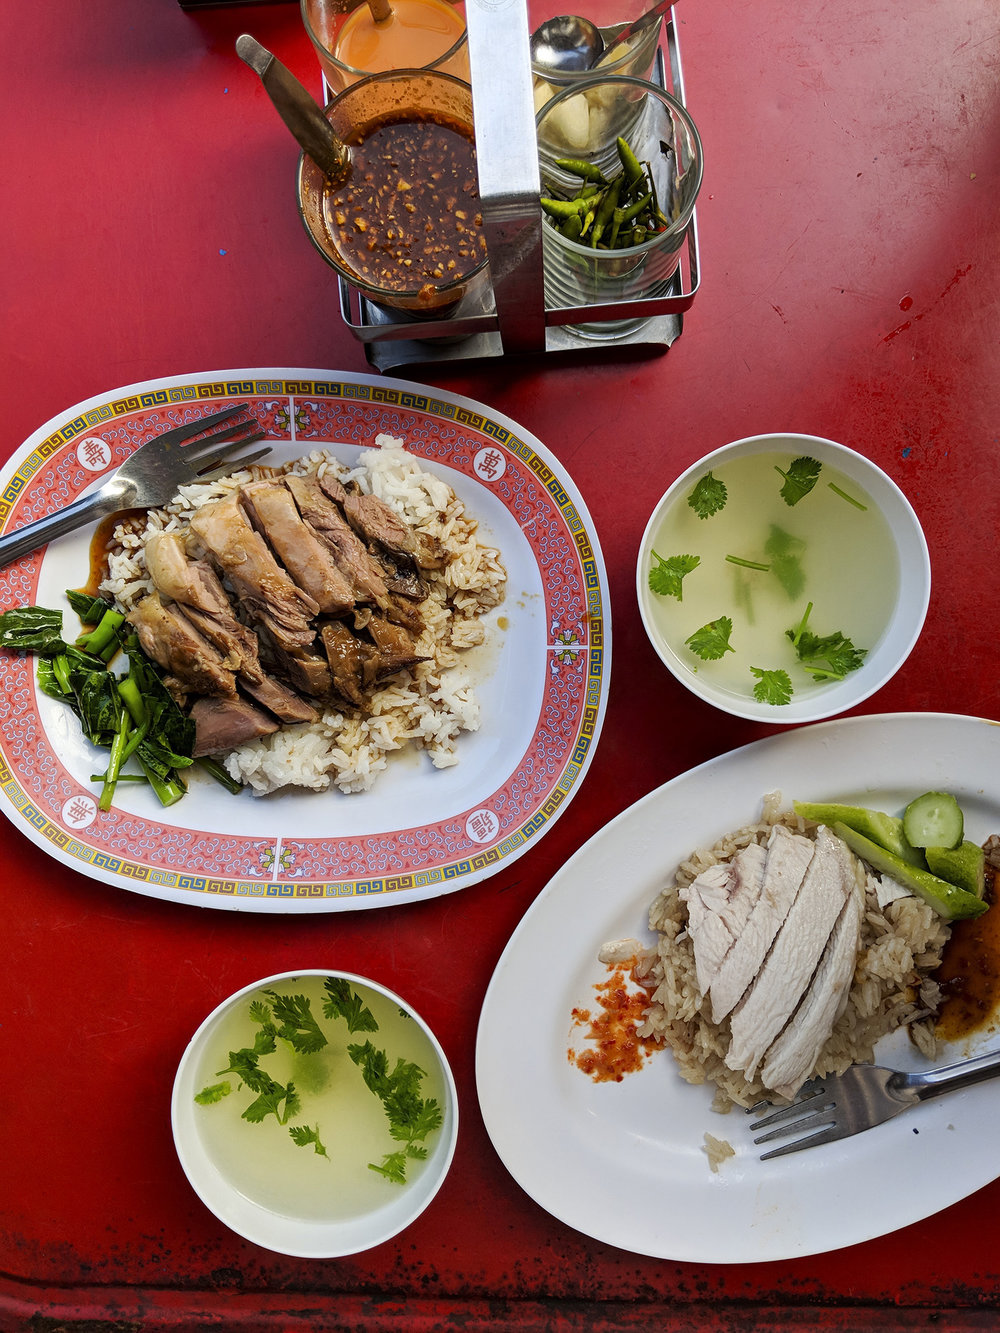 delicious street food- pork or chicken over rice